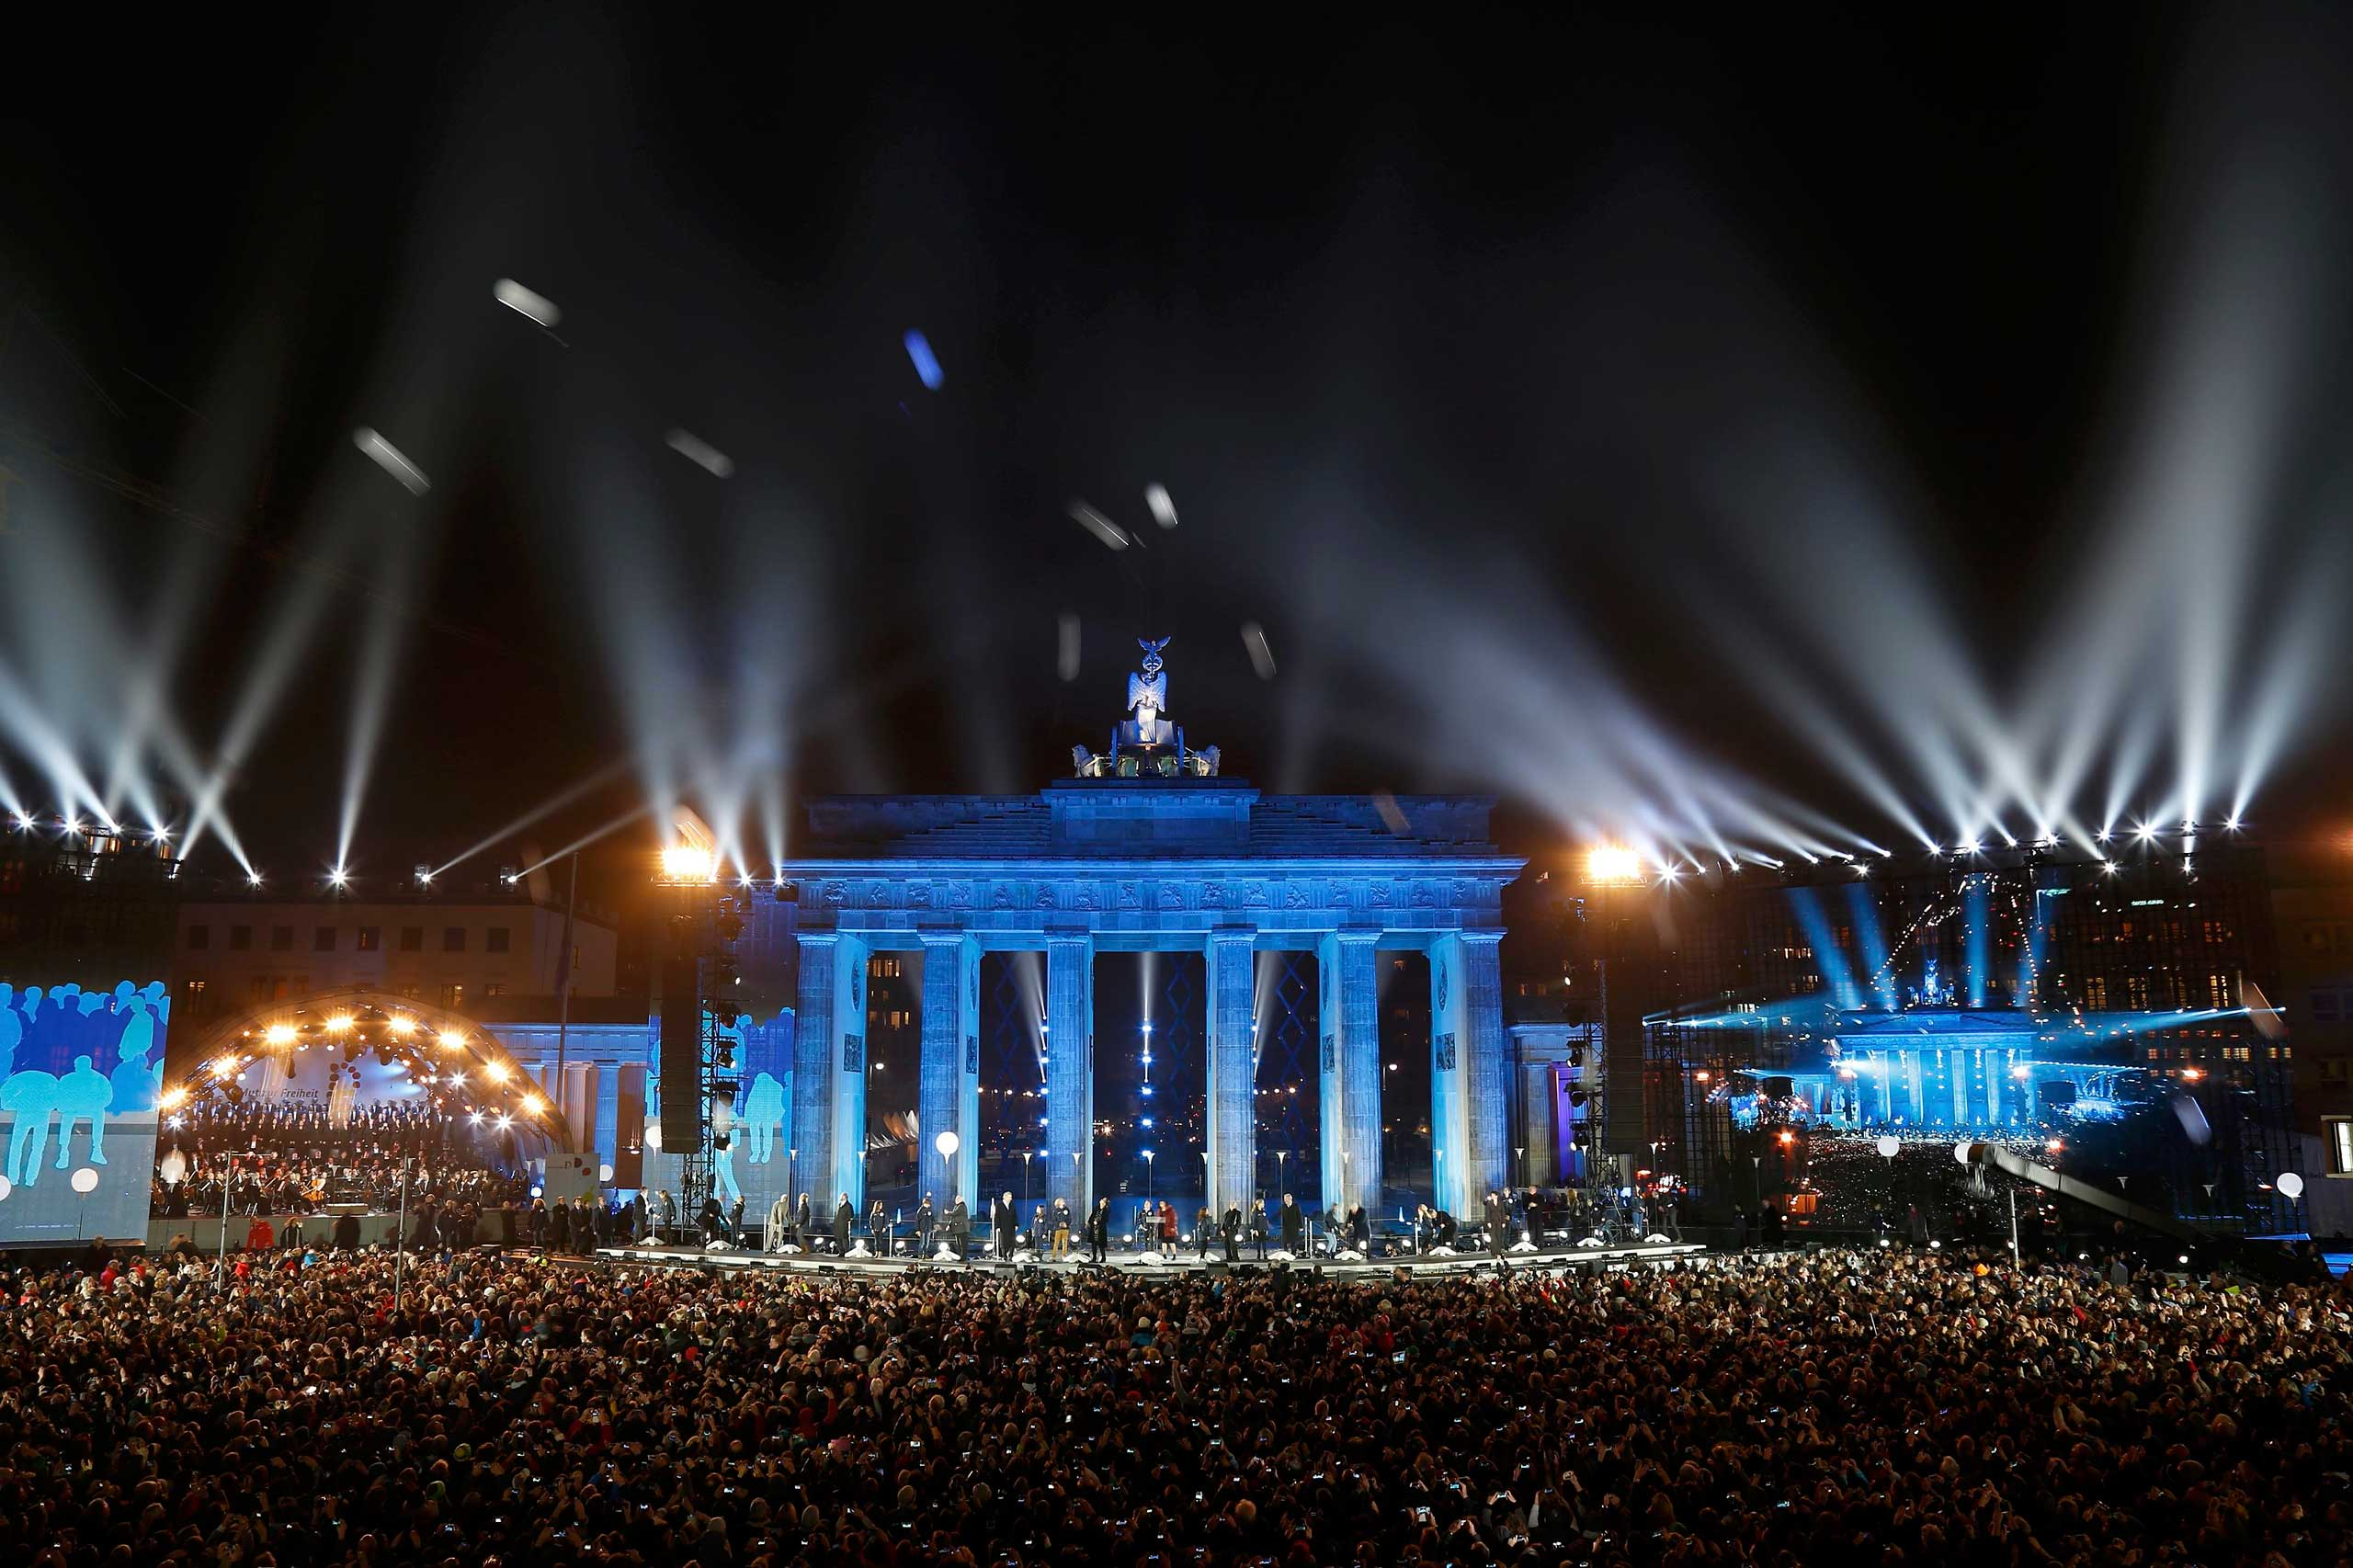 Balloons which were part of the installation 'Lichtgrenze' (Border of Light) are released in front of the Brandenburg Gate in Berlin, November 9, 2014.